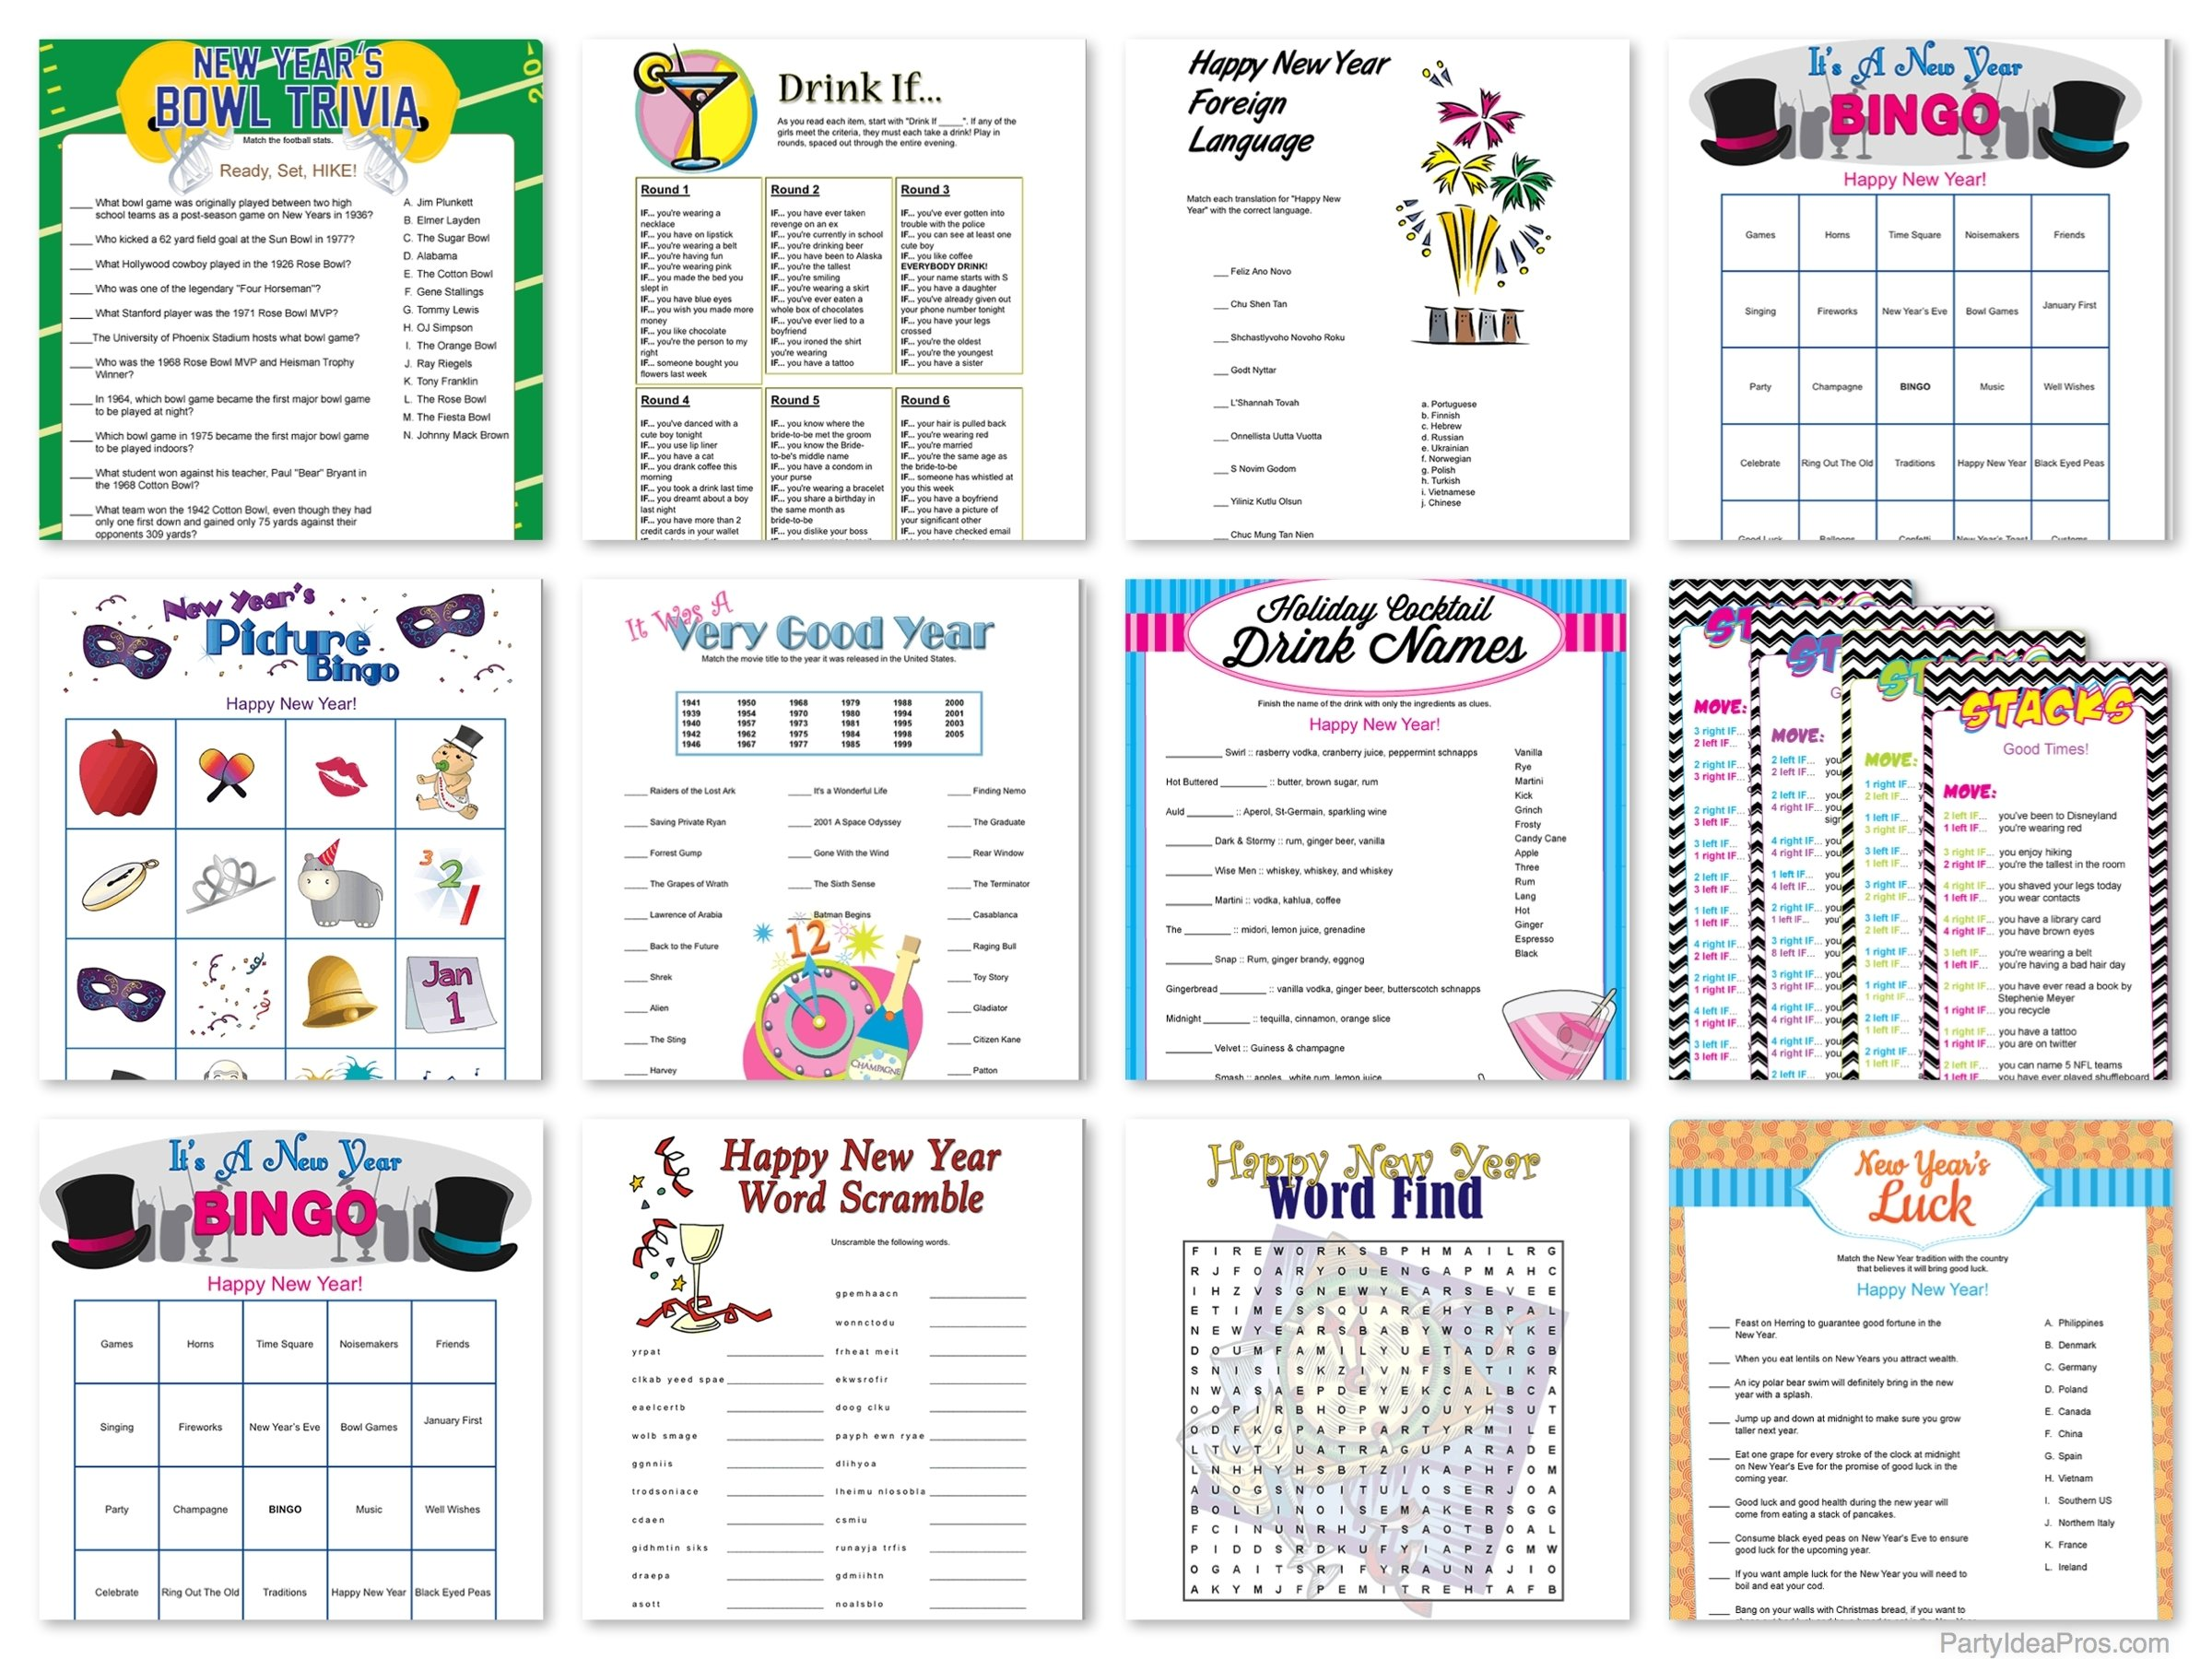 10 Lovable New Years Party Game Ideas new years eve party game ideas for adults wedding 2020